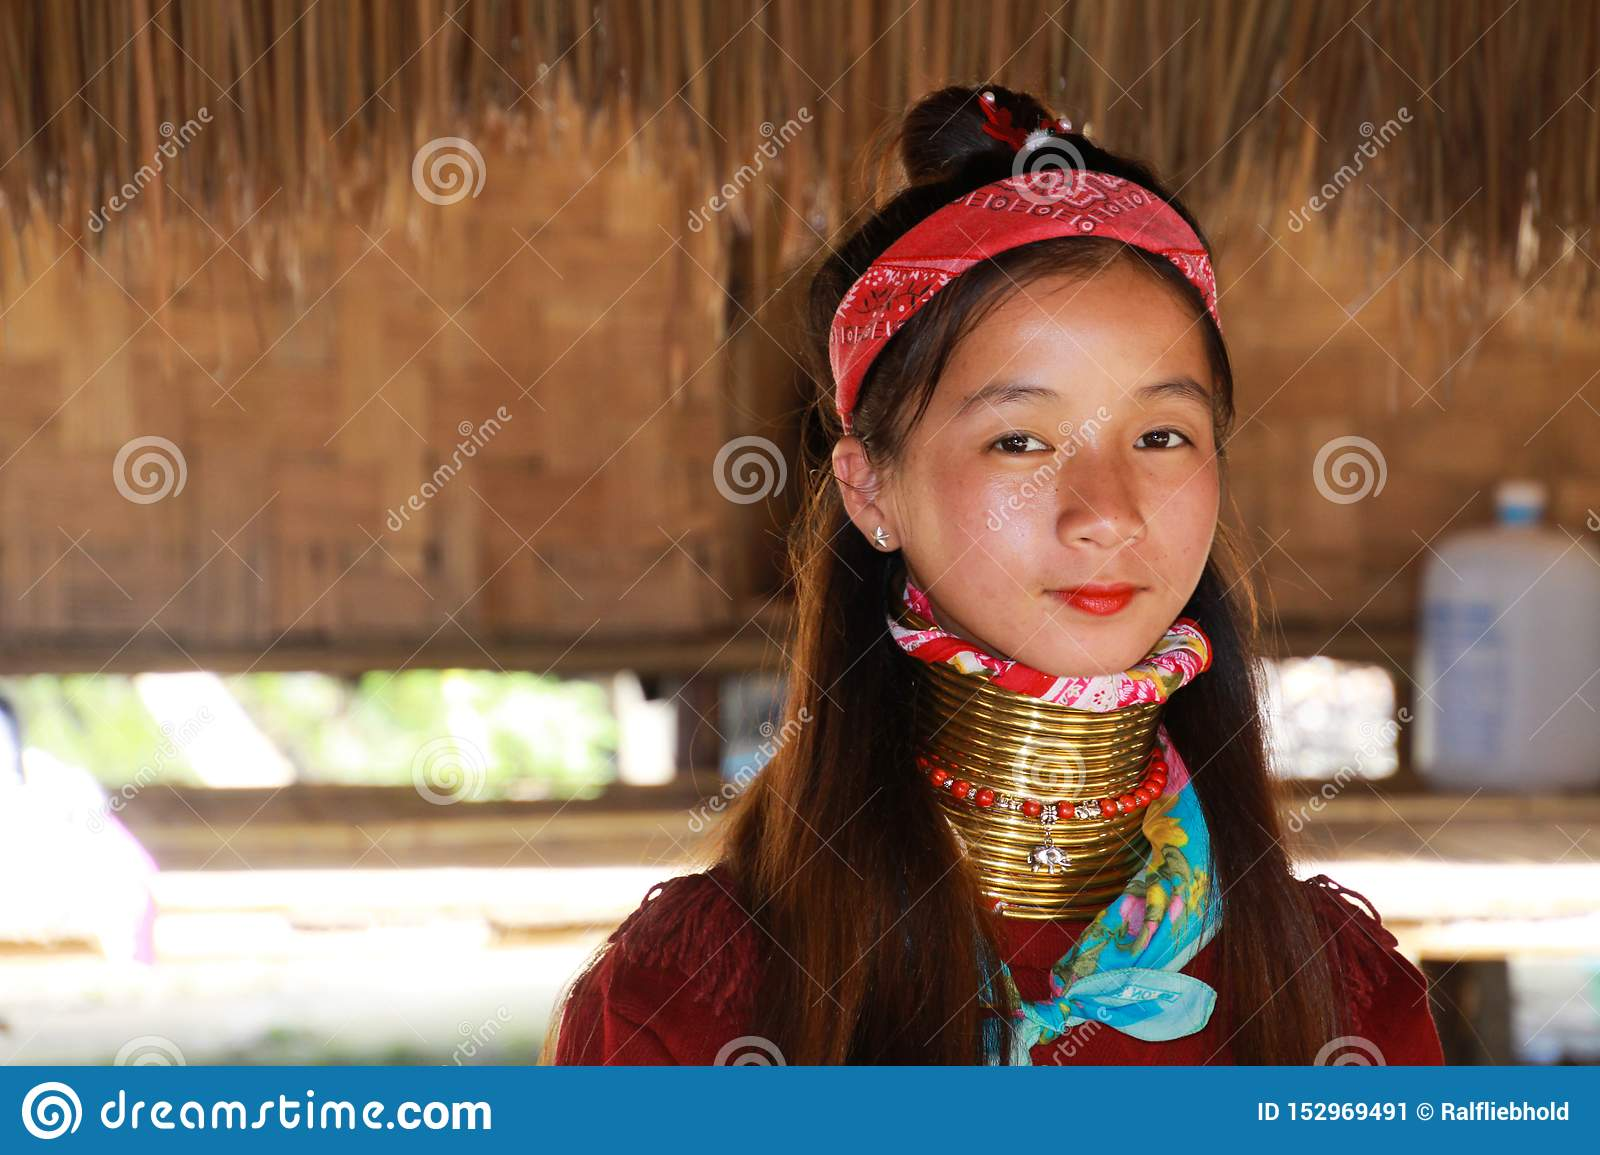 LONGNECK KAREN VILLAGE, THAILAND - DECEMBER 17. 2017: Close up portrait of young long neck girl with Thanaka face painting and